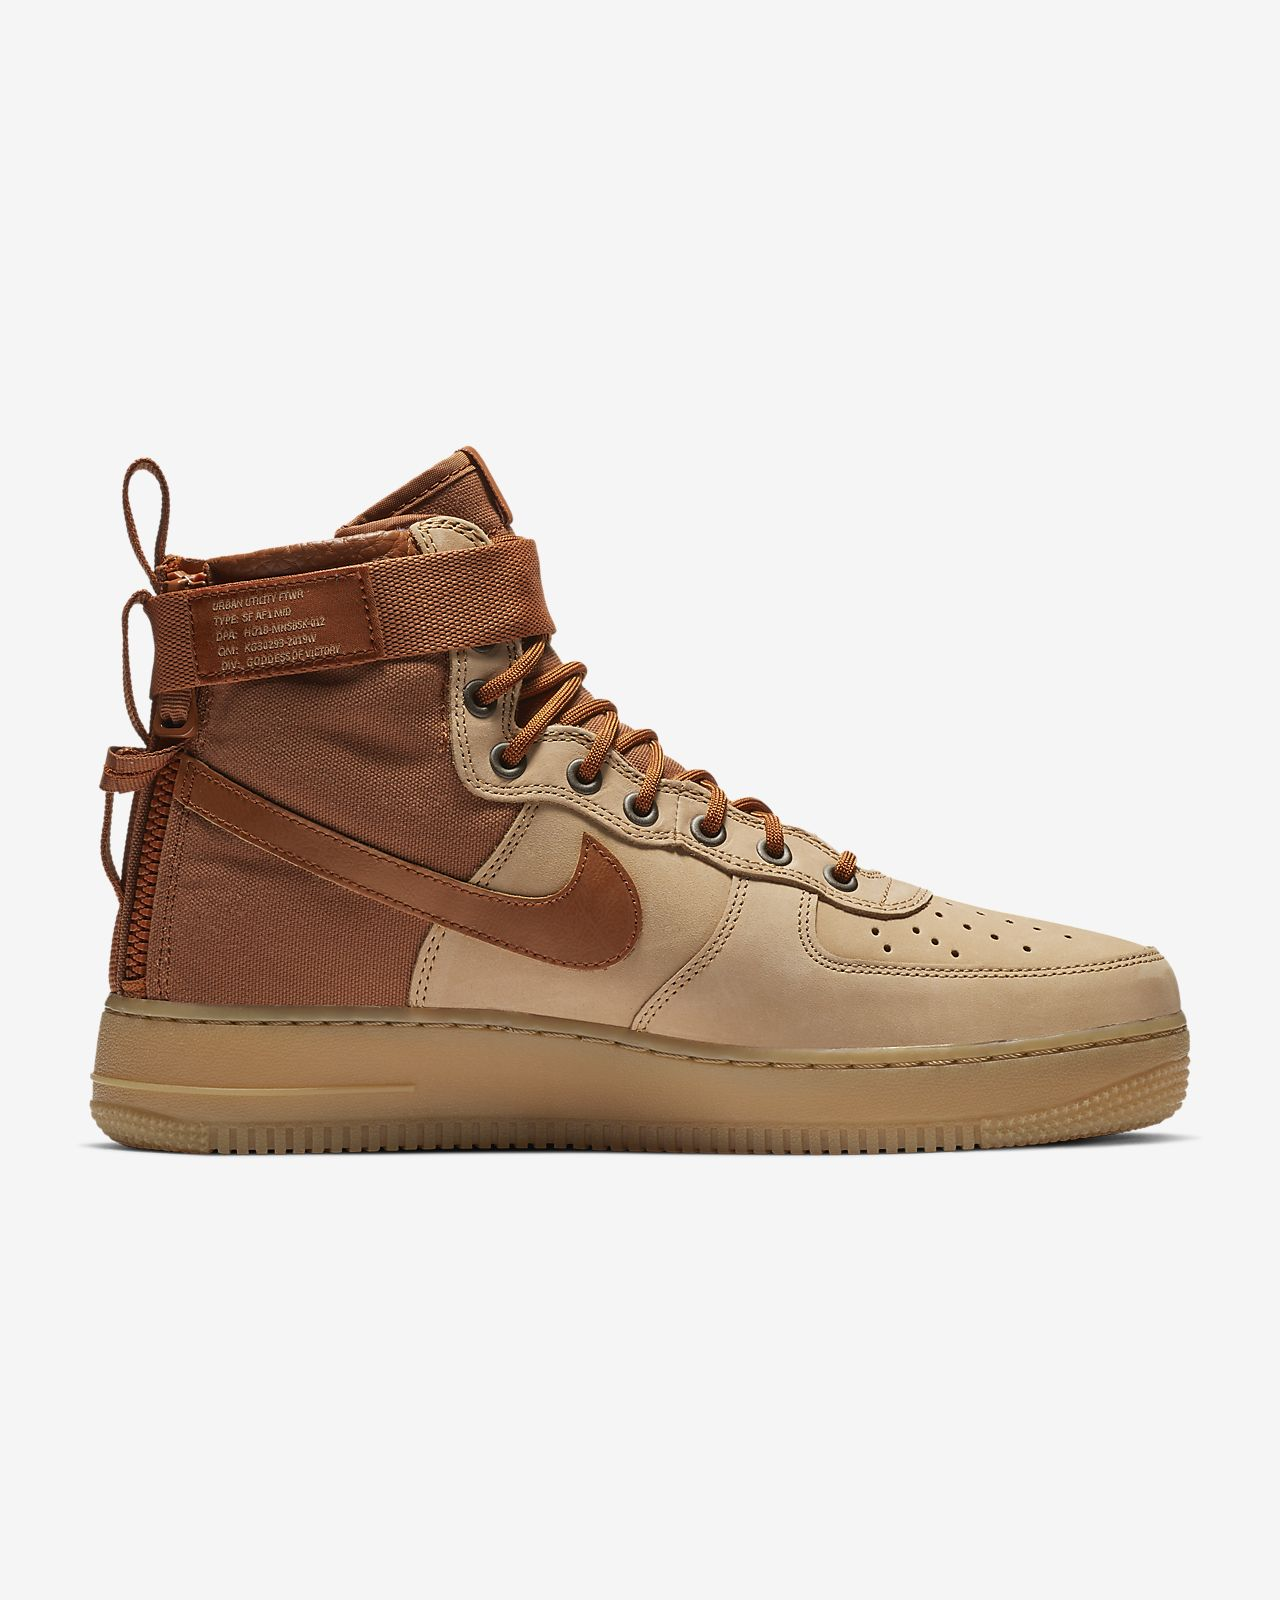 dd9b785ce2daf Nike SF Air Force 1 Mid Premium Men s Shoe. Nike.com ZA